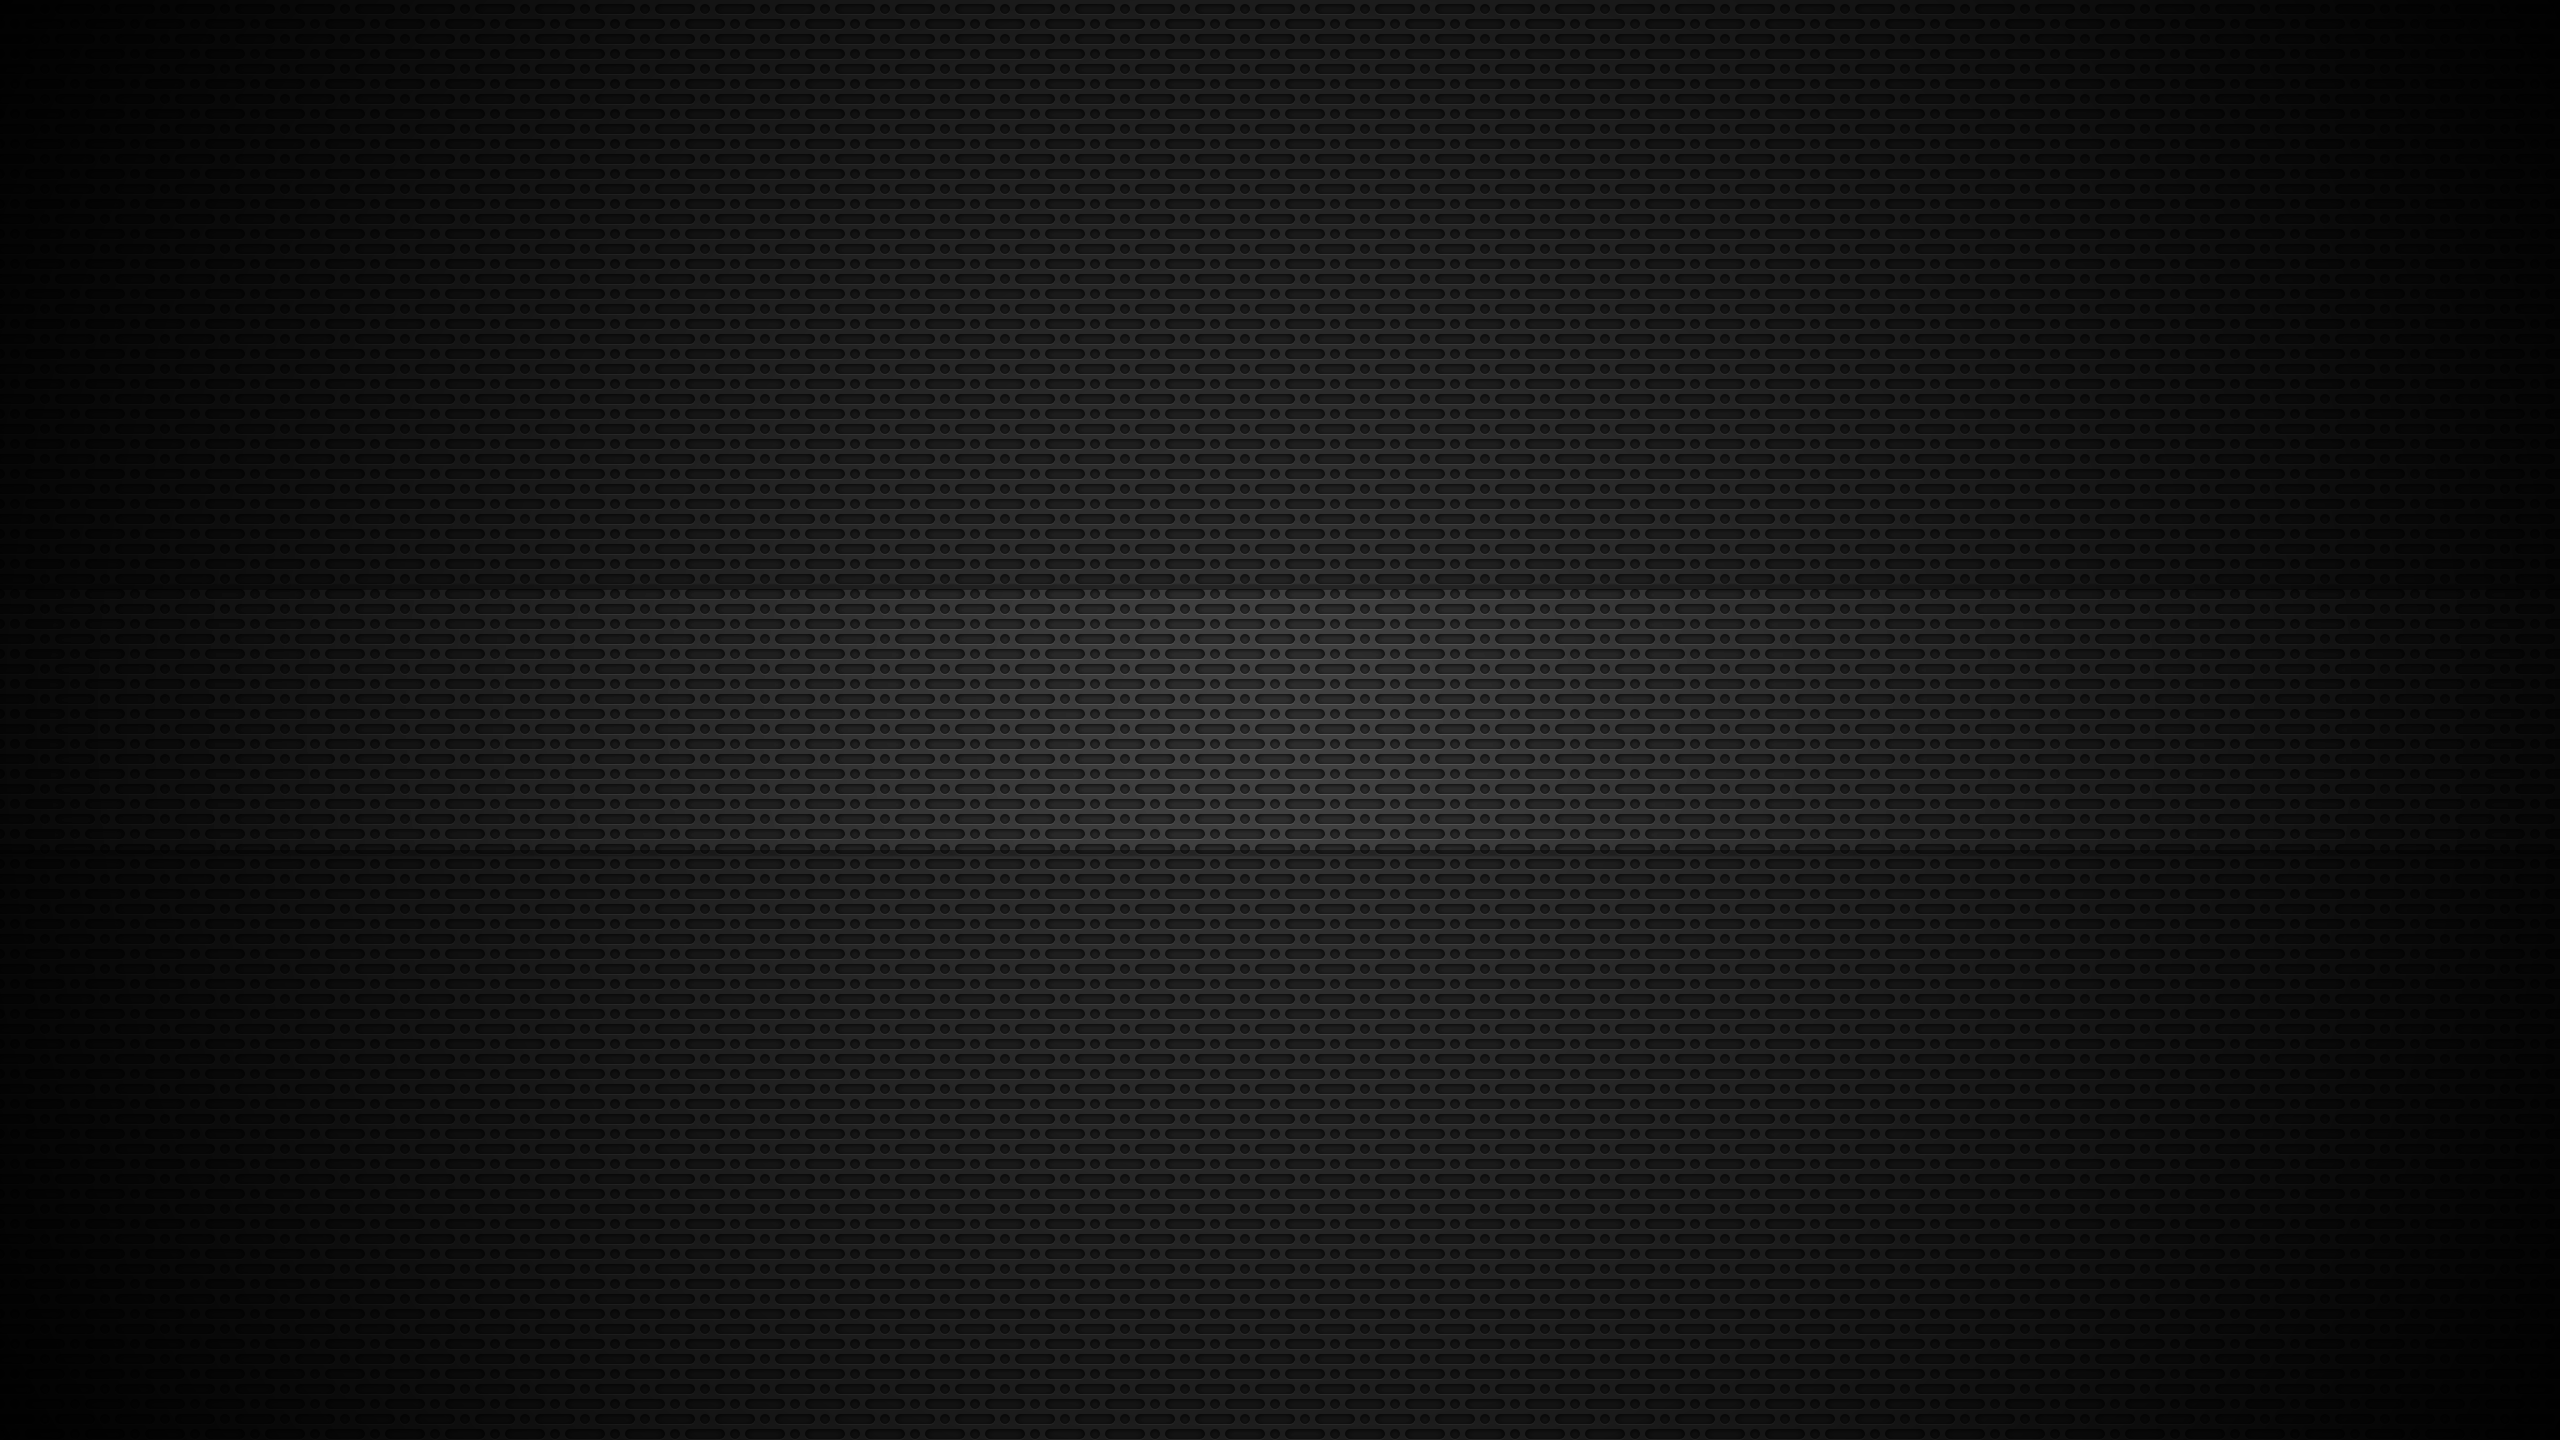 Youtube Banner Wallpapers Top Free Youtube Banner Backgrounds Wallpaperaccess